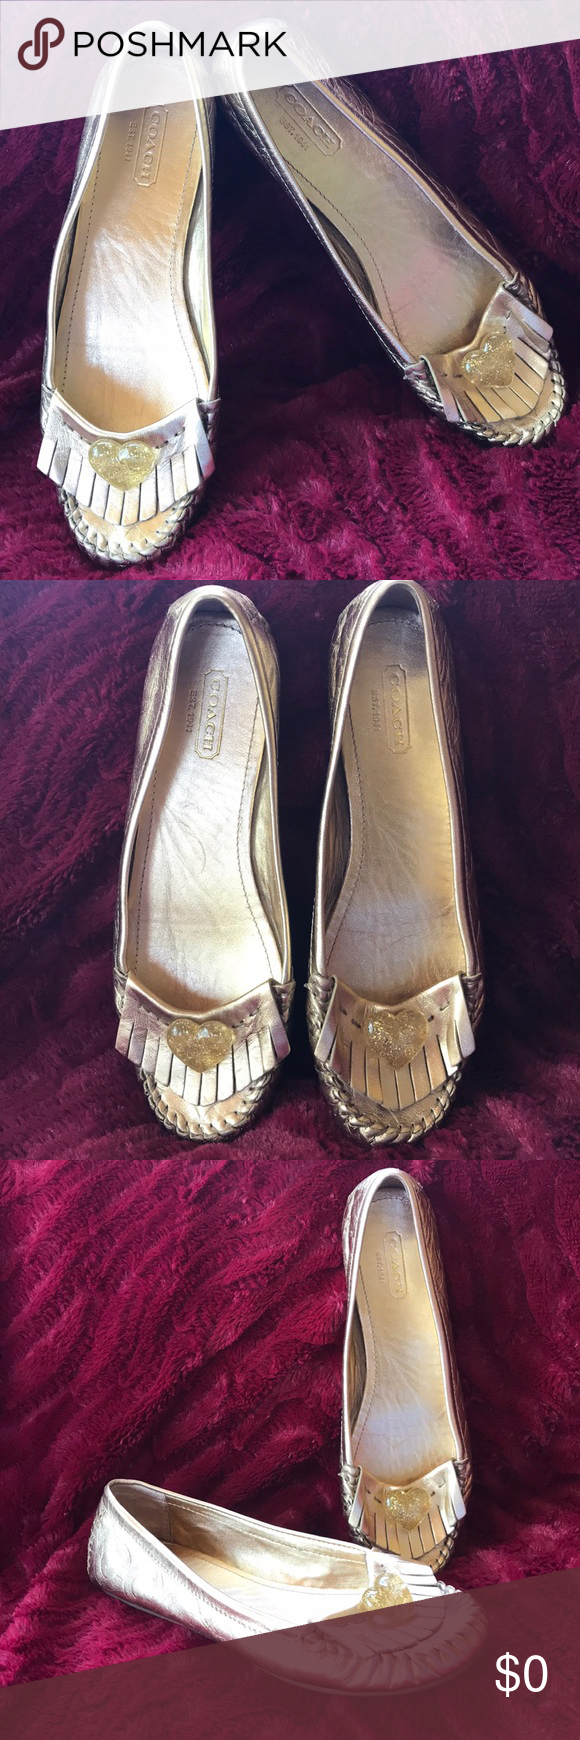 2ead3a8a836c COACH PENNEY LOAFER 6 GOLD sig c LOGO HEART CHARM COACH PENNEY GOLD METALLIC  LEATHER MOCCASIN